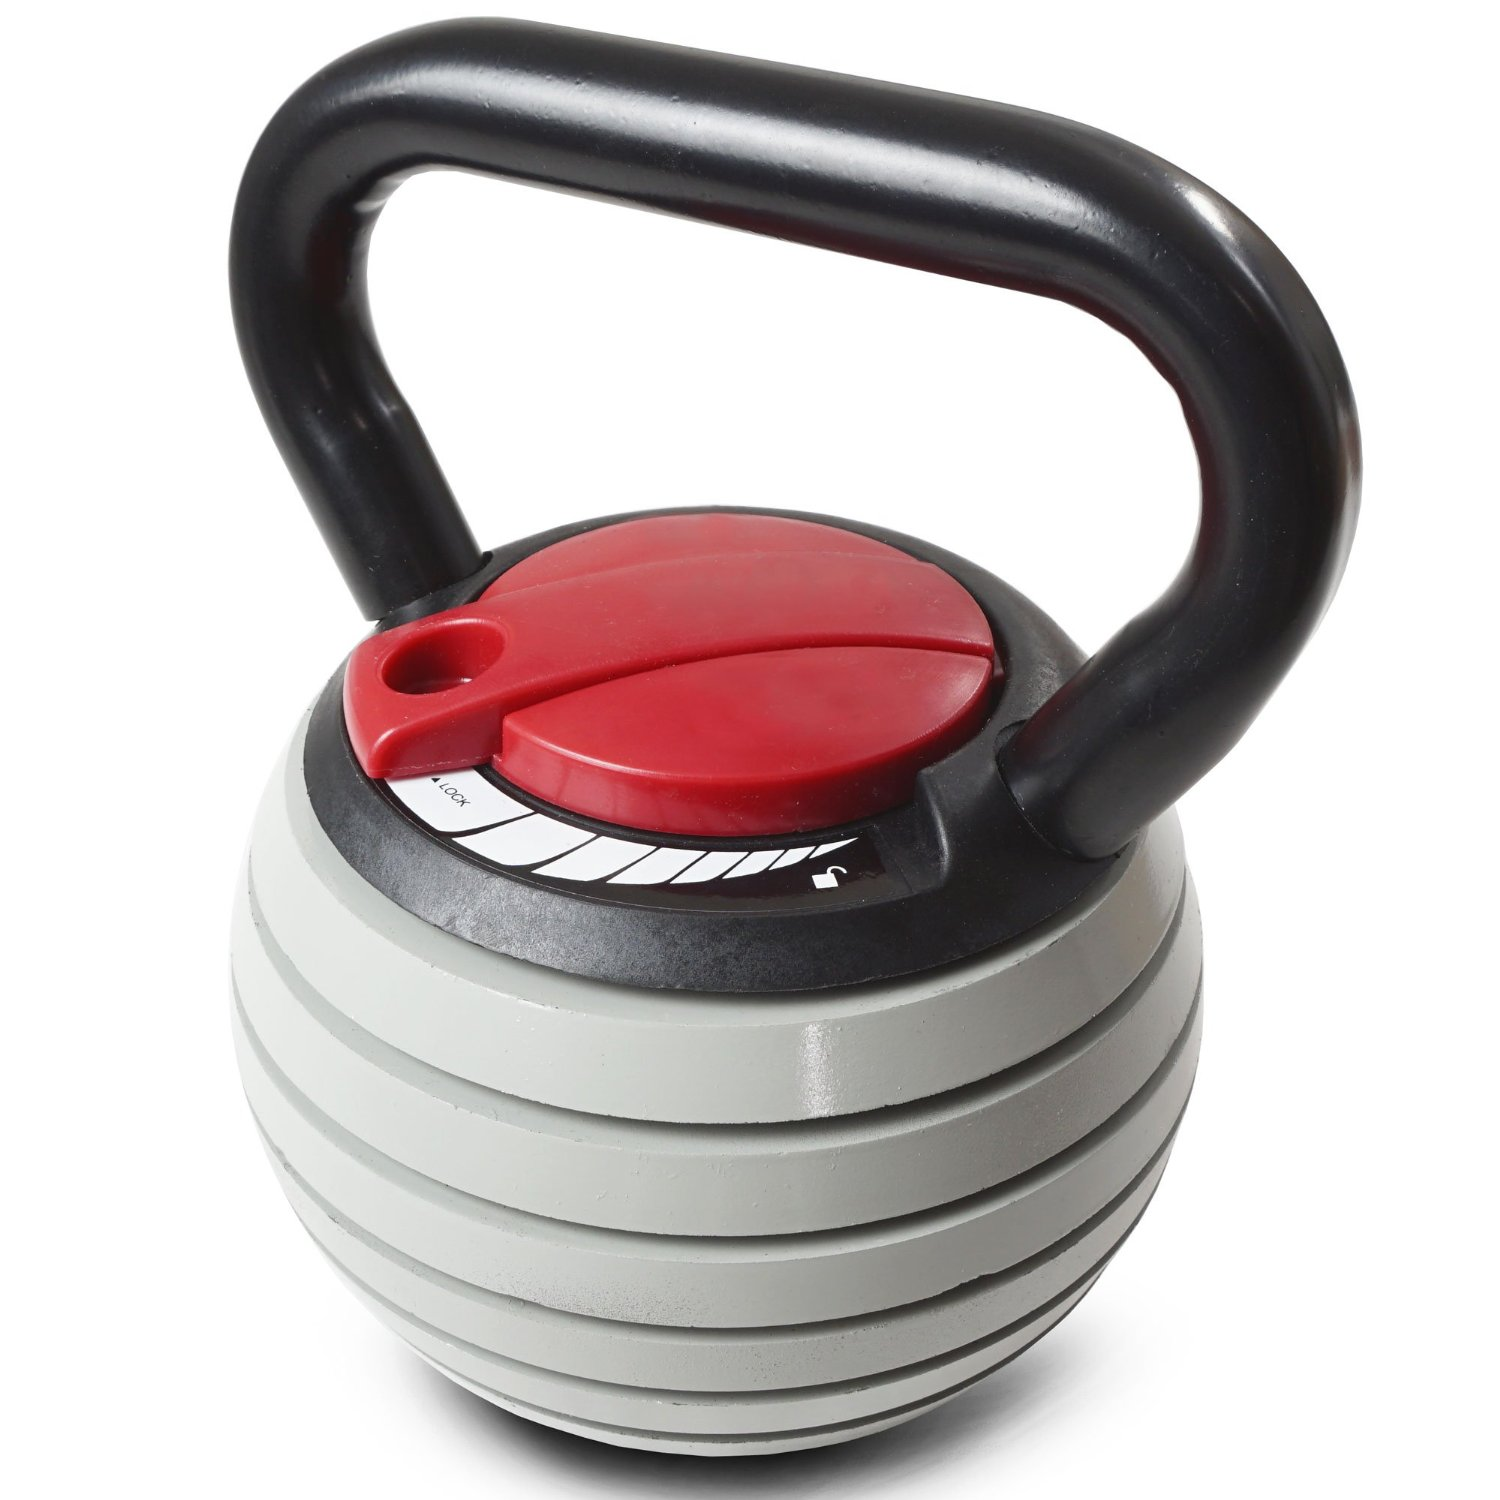 Titan Fitness 5 lb. - 35 lb Adjustable Kettlebell Weight Lifting